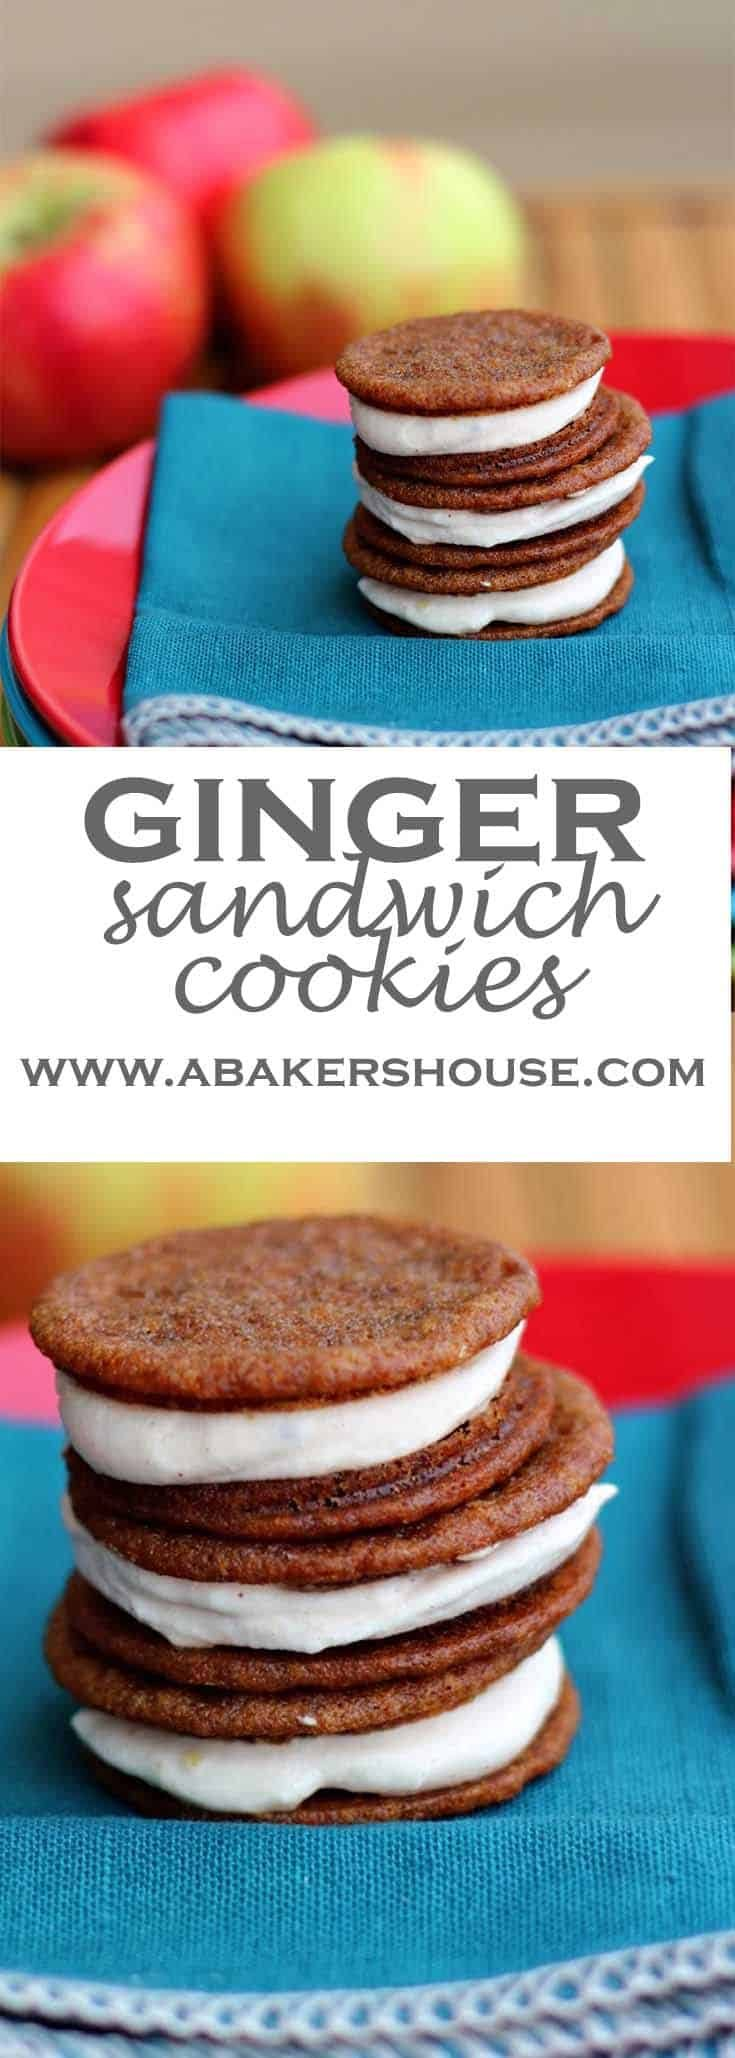 Ginger Sandwich Cookies with an apple butter icing filling. #gingercookie #abakershouse #autumn #thanksgiving #applebutter #sandwichcookies